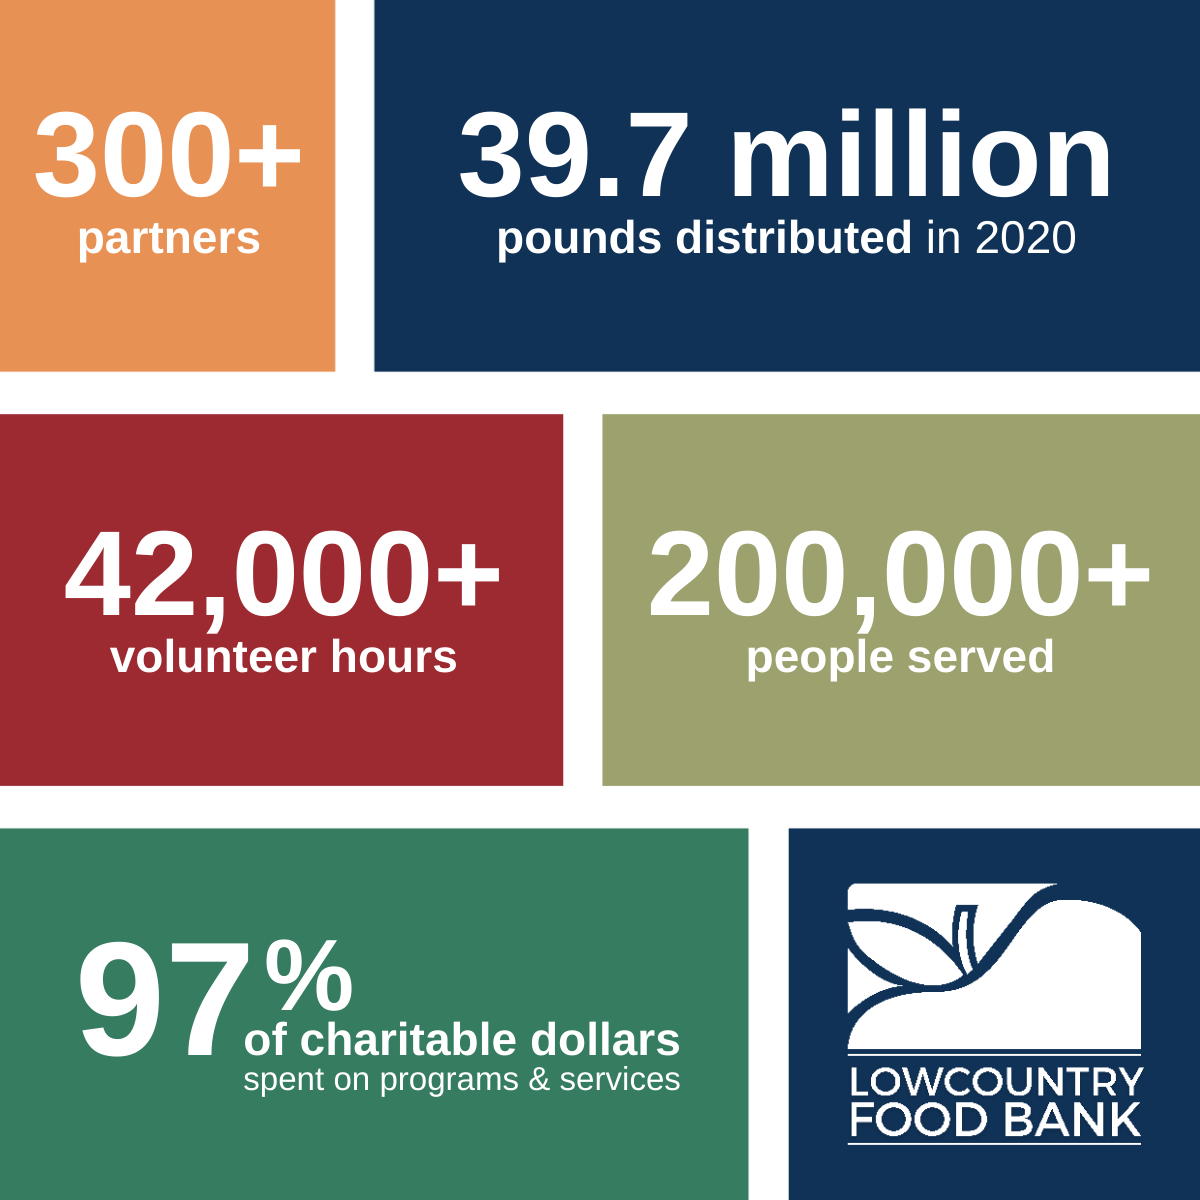 Lowcountry Food Bank By The Numbers